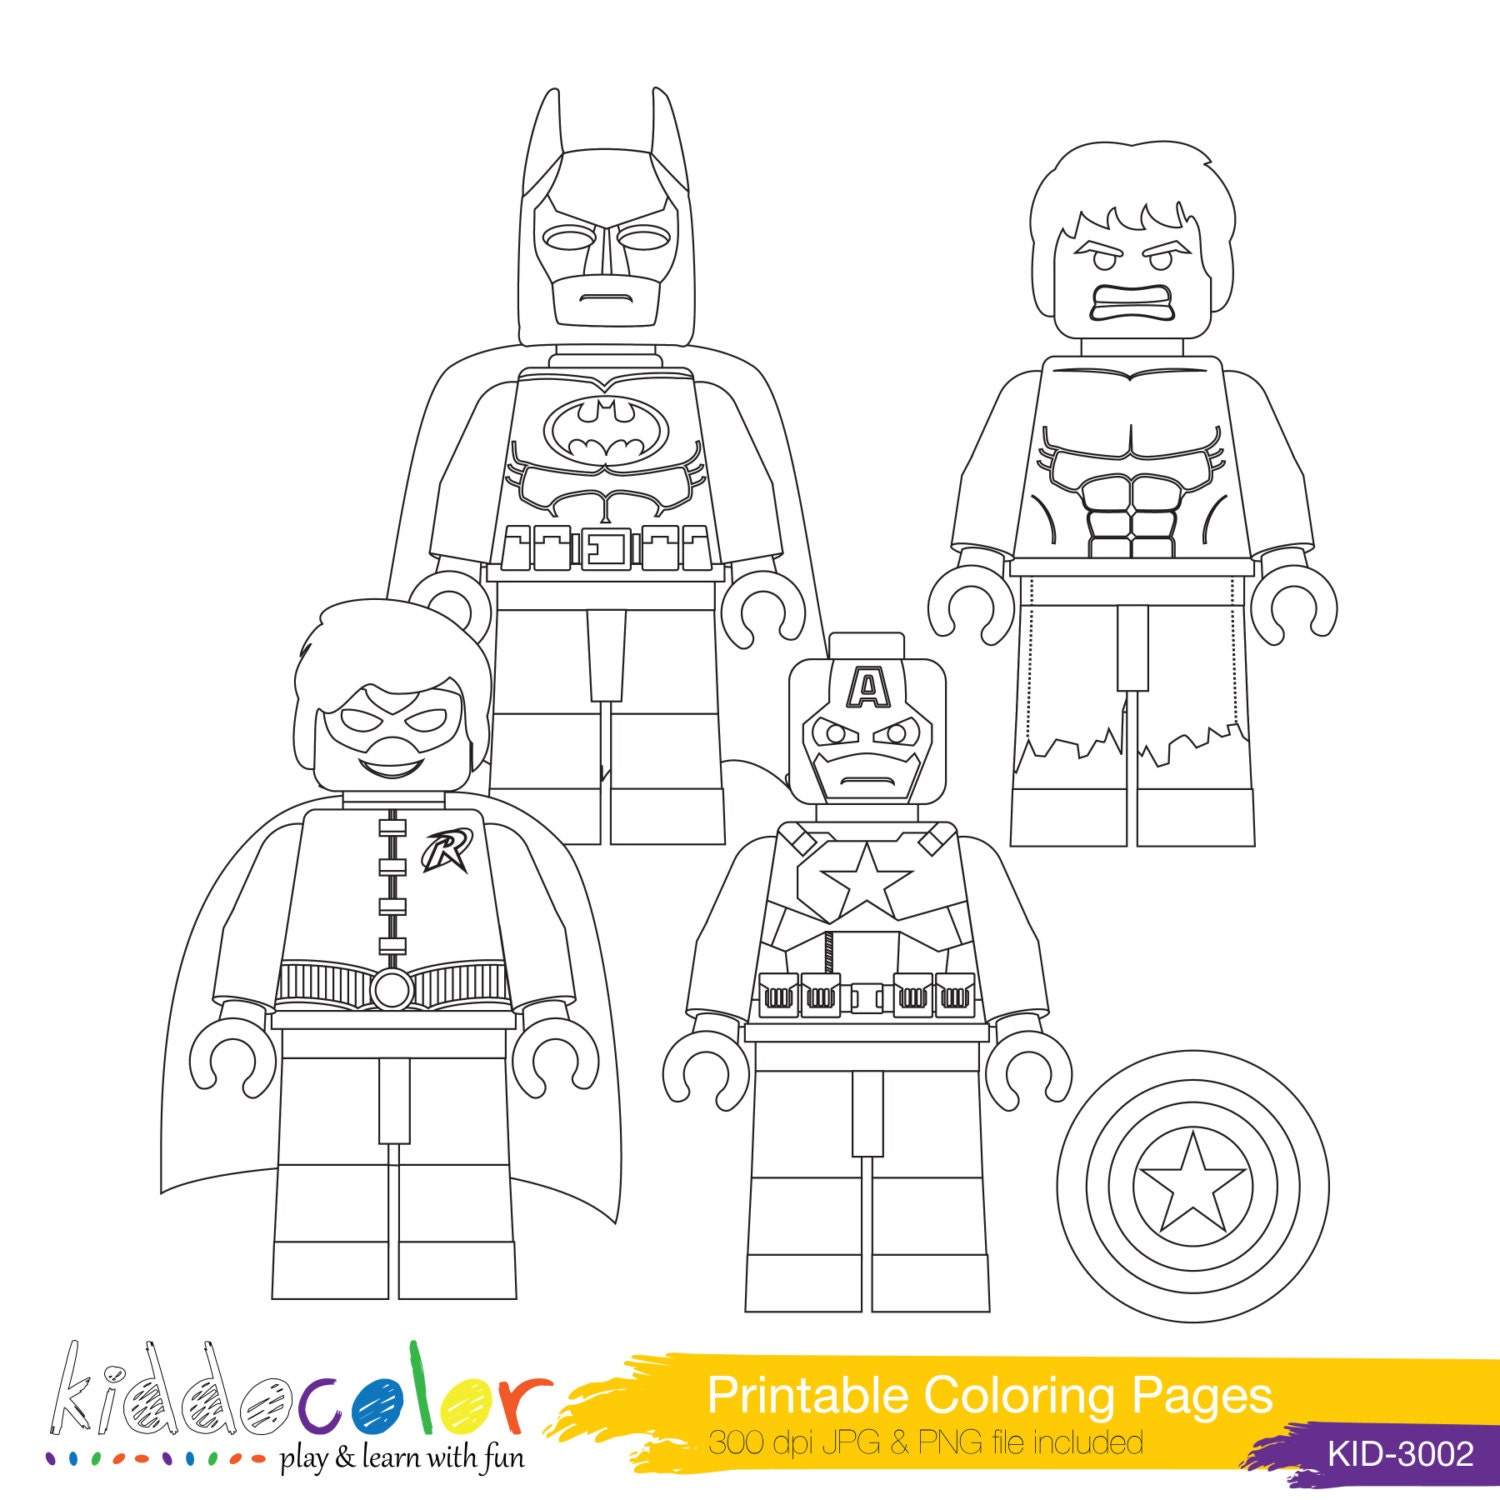 captain america lego marvel coloring pages coloring pages LEGO Avengers Coloring Pages  Captain America Lego Coloring Pages